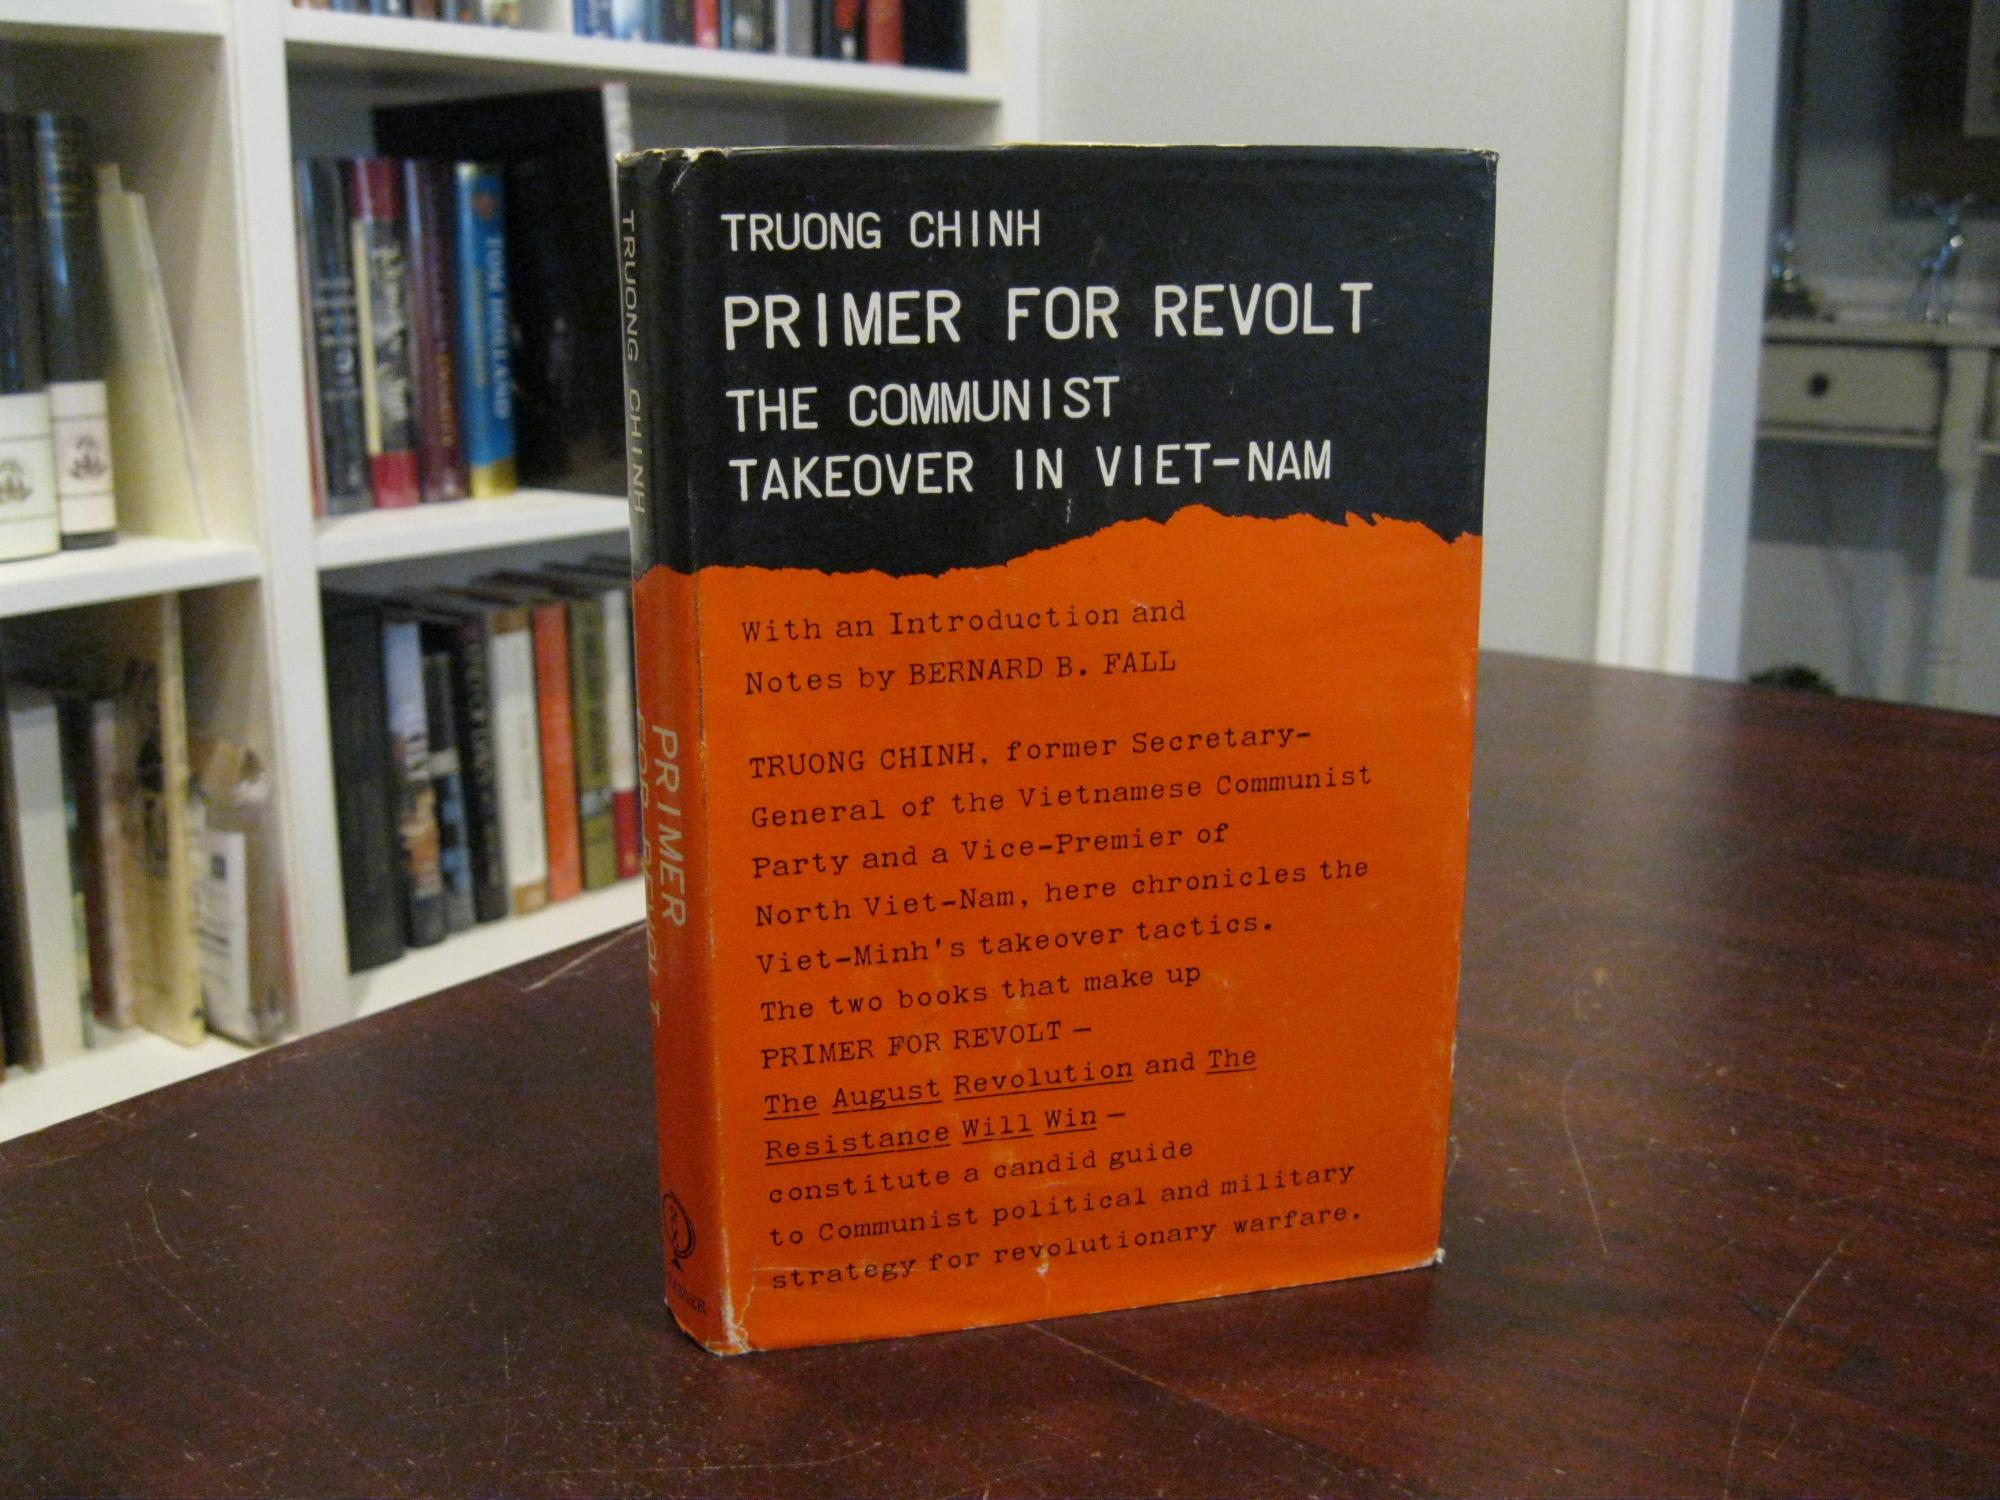 PRIMER_FOR_REVOLT_THE_COMMUNIST_TAKEOVER_IN_VIETNAM_TRUONG_CHINH_Very_Good_Hardcover